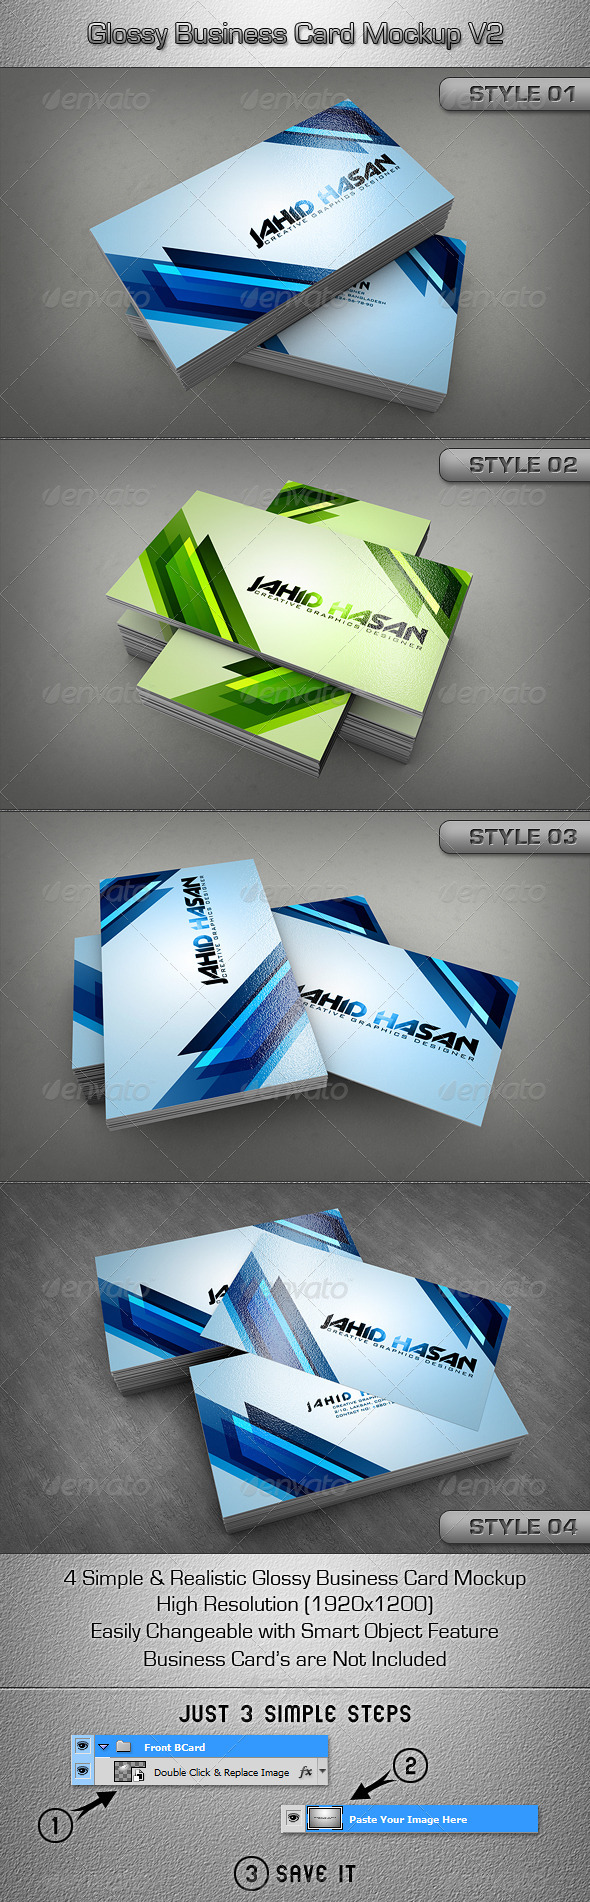 Glossy Business Card MockUp V2 - Business Cards Print